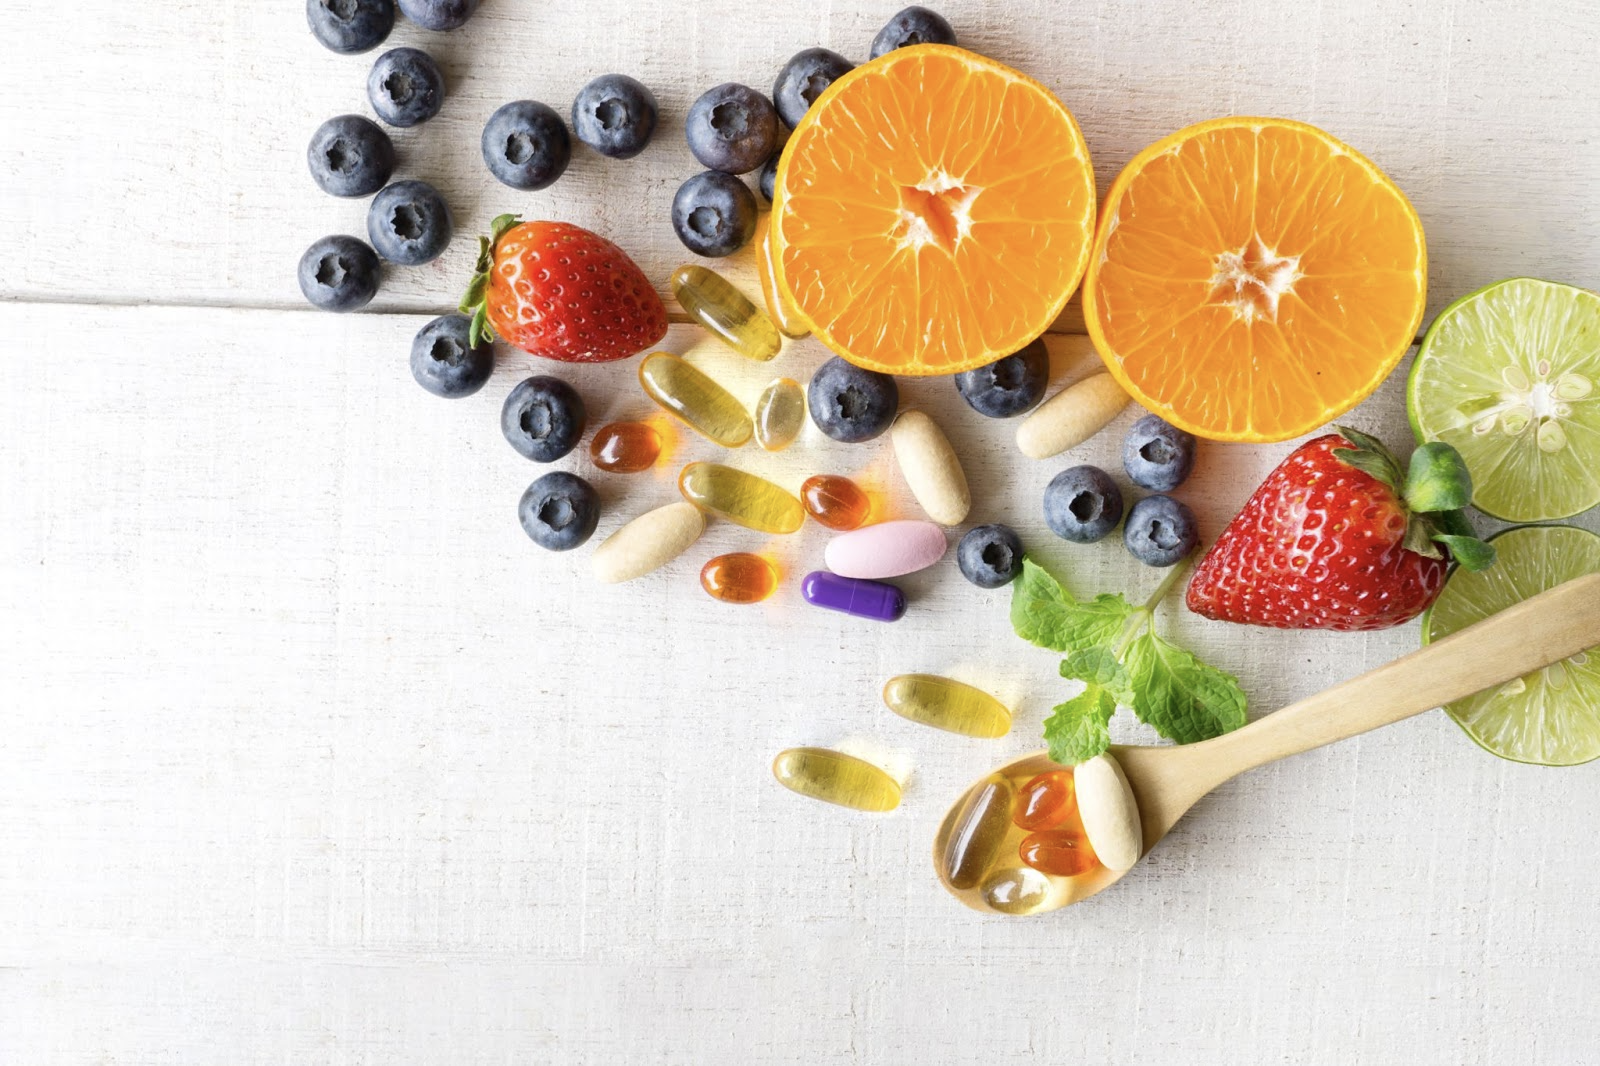 ulcerative colitis vs Crohns: Variety of fruits and capsules on a white wooden surface